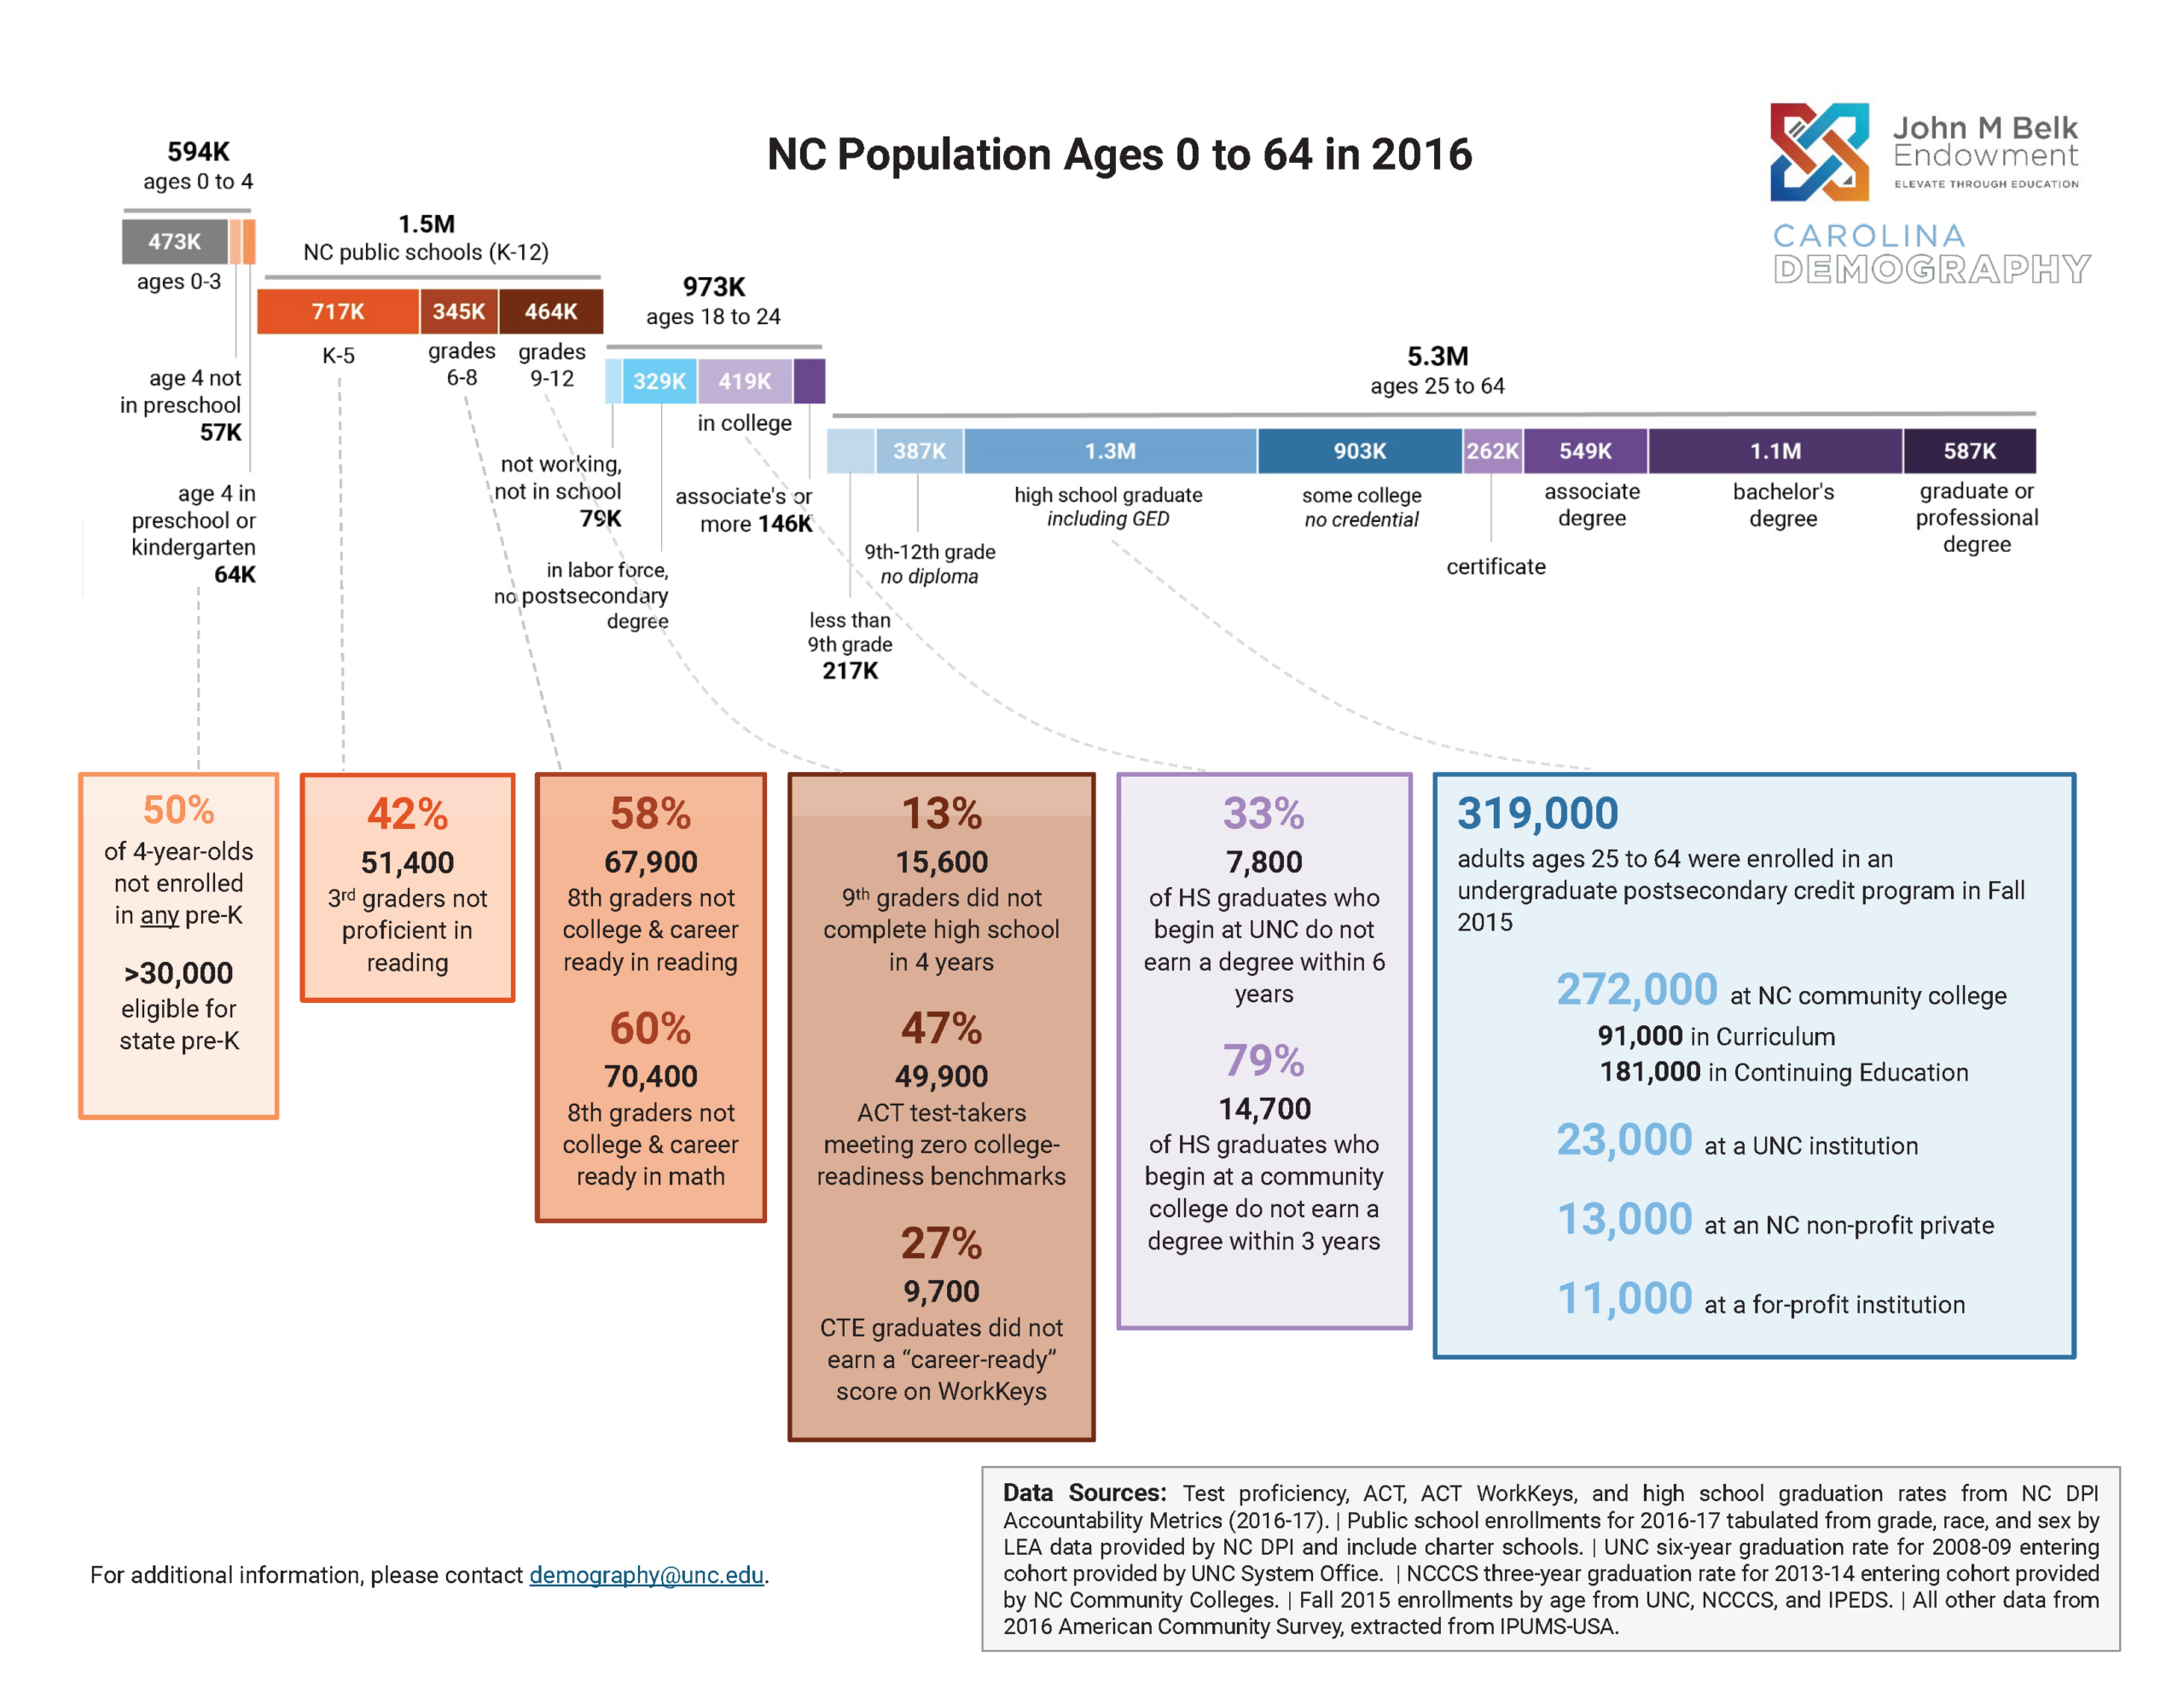 NC population ages 0 to 64 in 2016. An informational graphic displaying the population breakdown by age and level of educational attainment. This graphic highlights areas where the education system of the state needs improvement